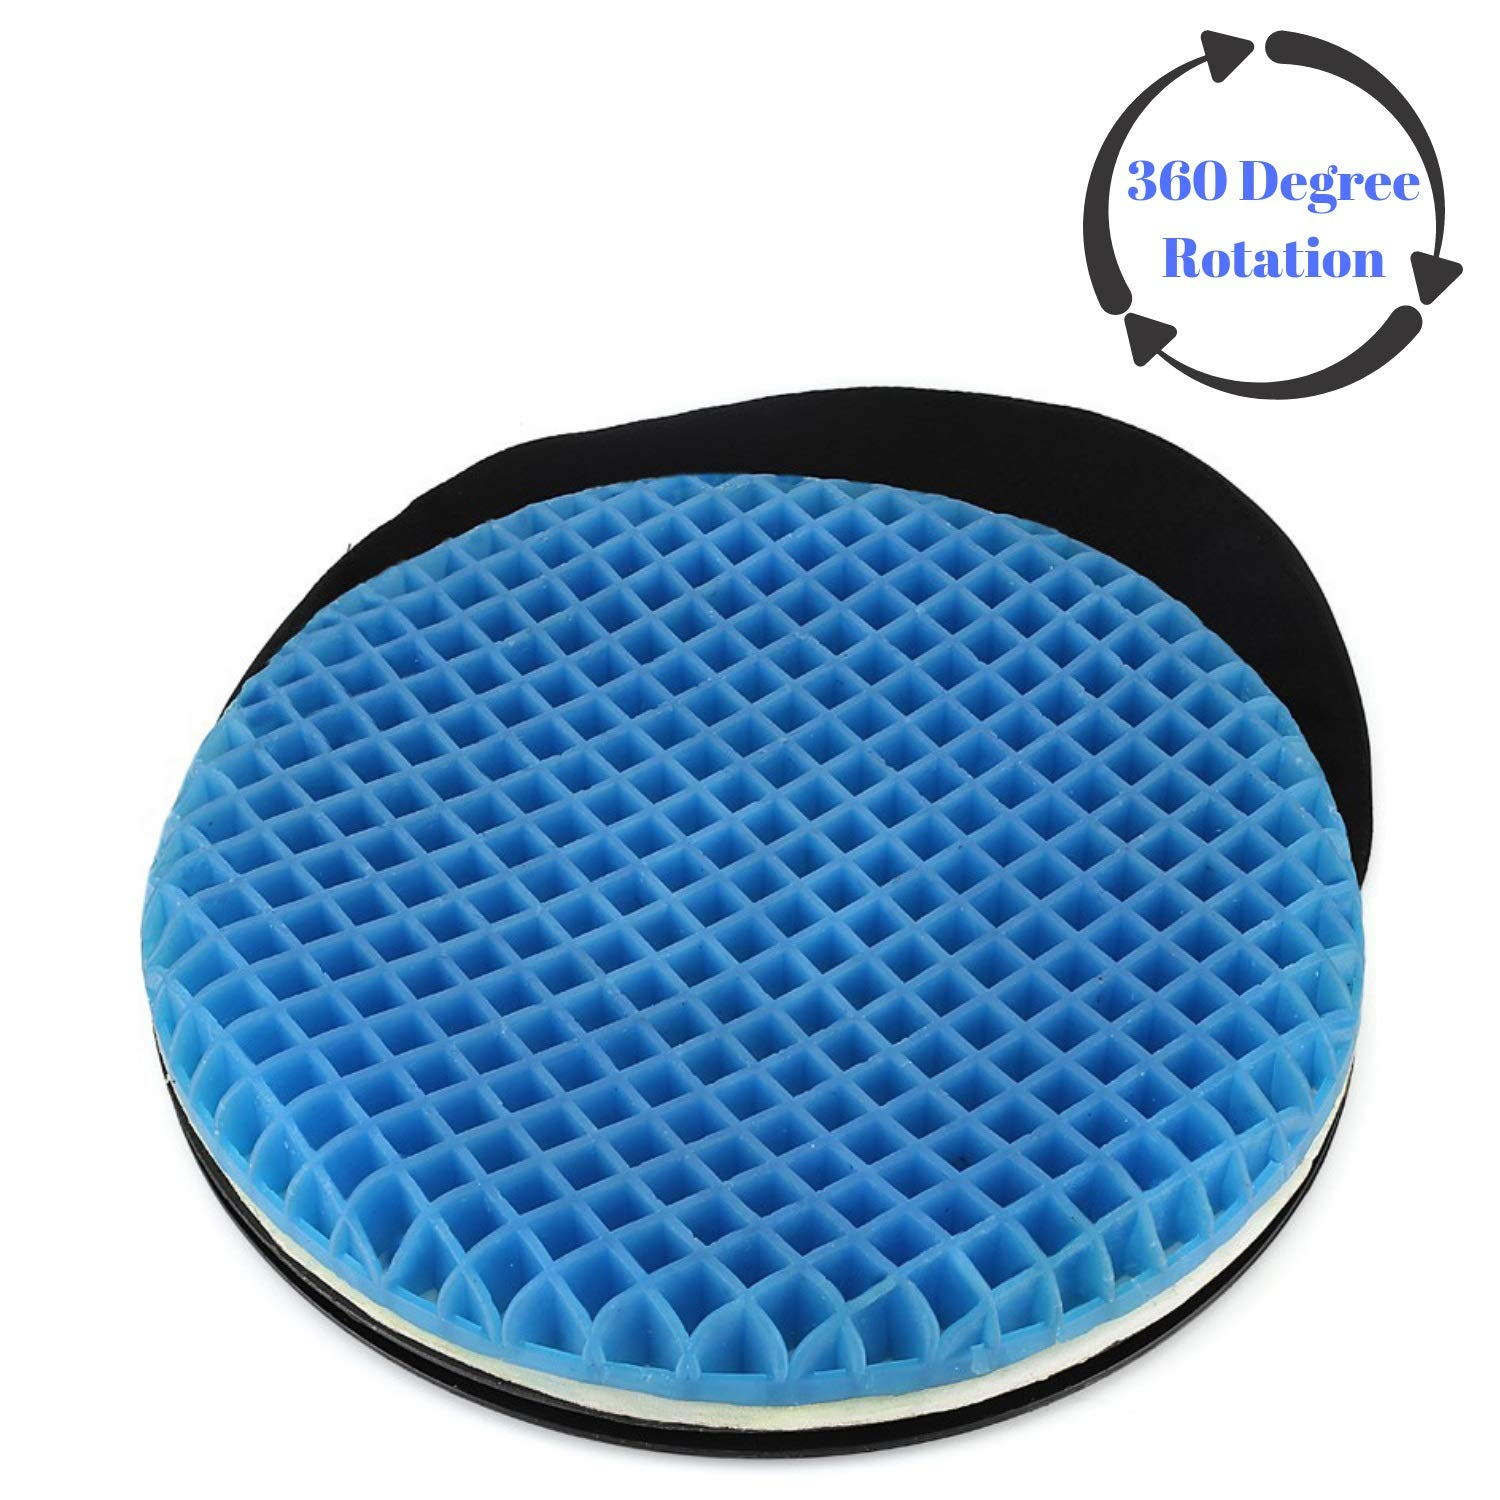 FOMI Premium Firm Swivel Gel Seat Cushion | 360 Degree Rotation | Round Thick Disc Pad for Home or Office Chair, Wheelchair, Boat, Stool | Pressure Sore Relief, Prevents Sweaty Bottom by FOMI